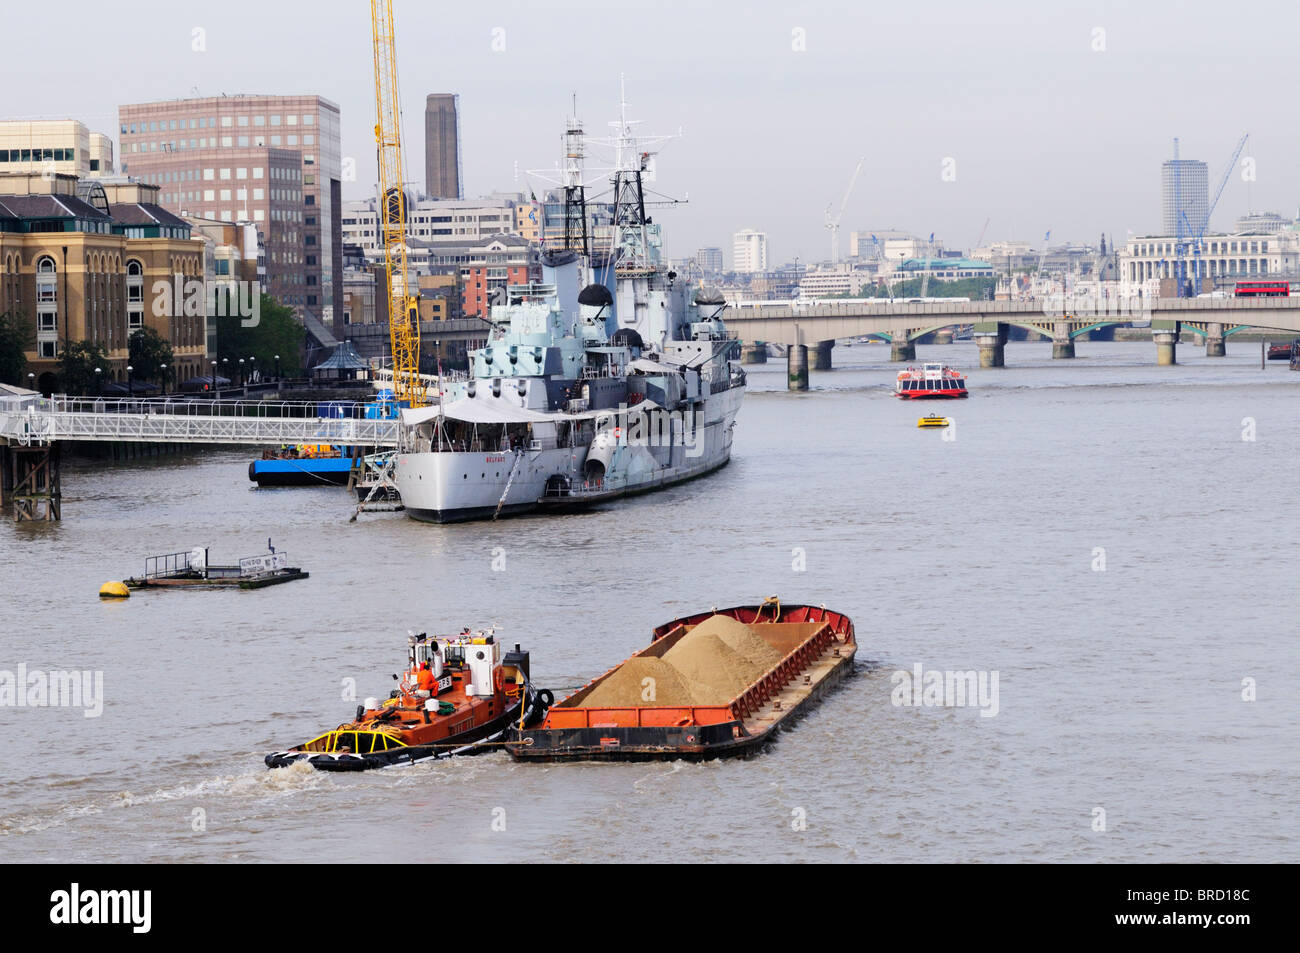 A Barge loaded with Sand being towed up the River Thames, London, England, UK - Stock Image